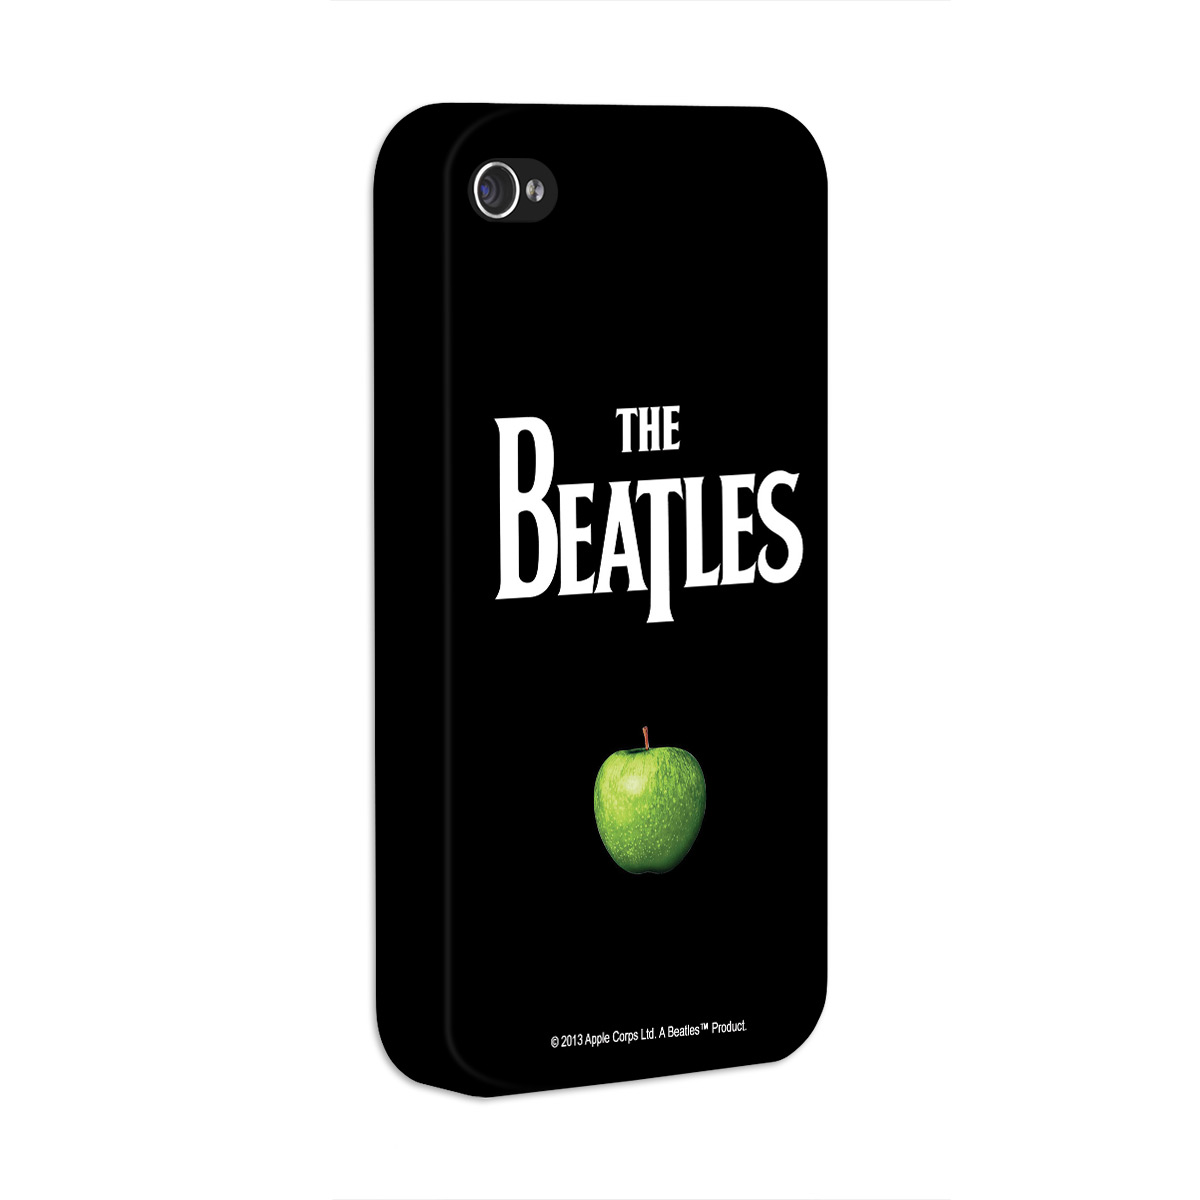 Capa de iPhone 4/4S The Beatles Apple Basic